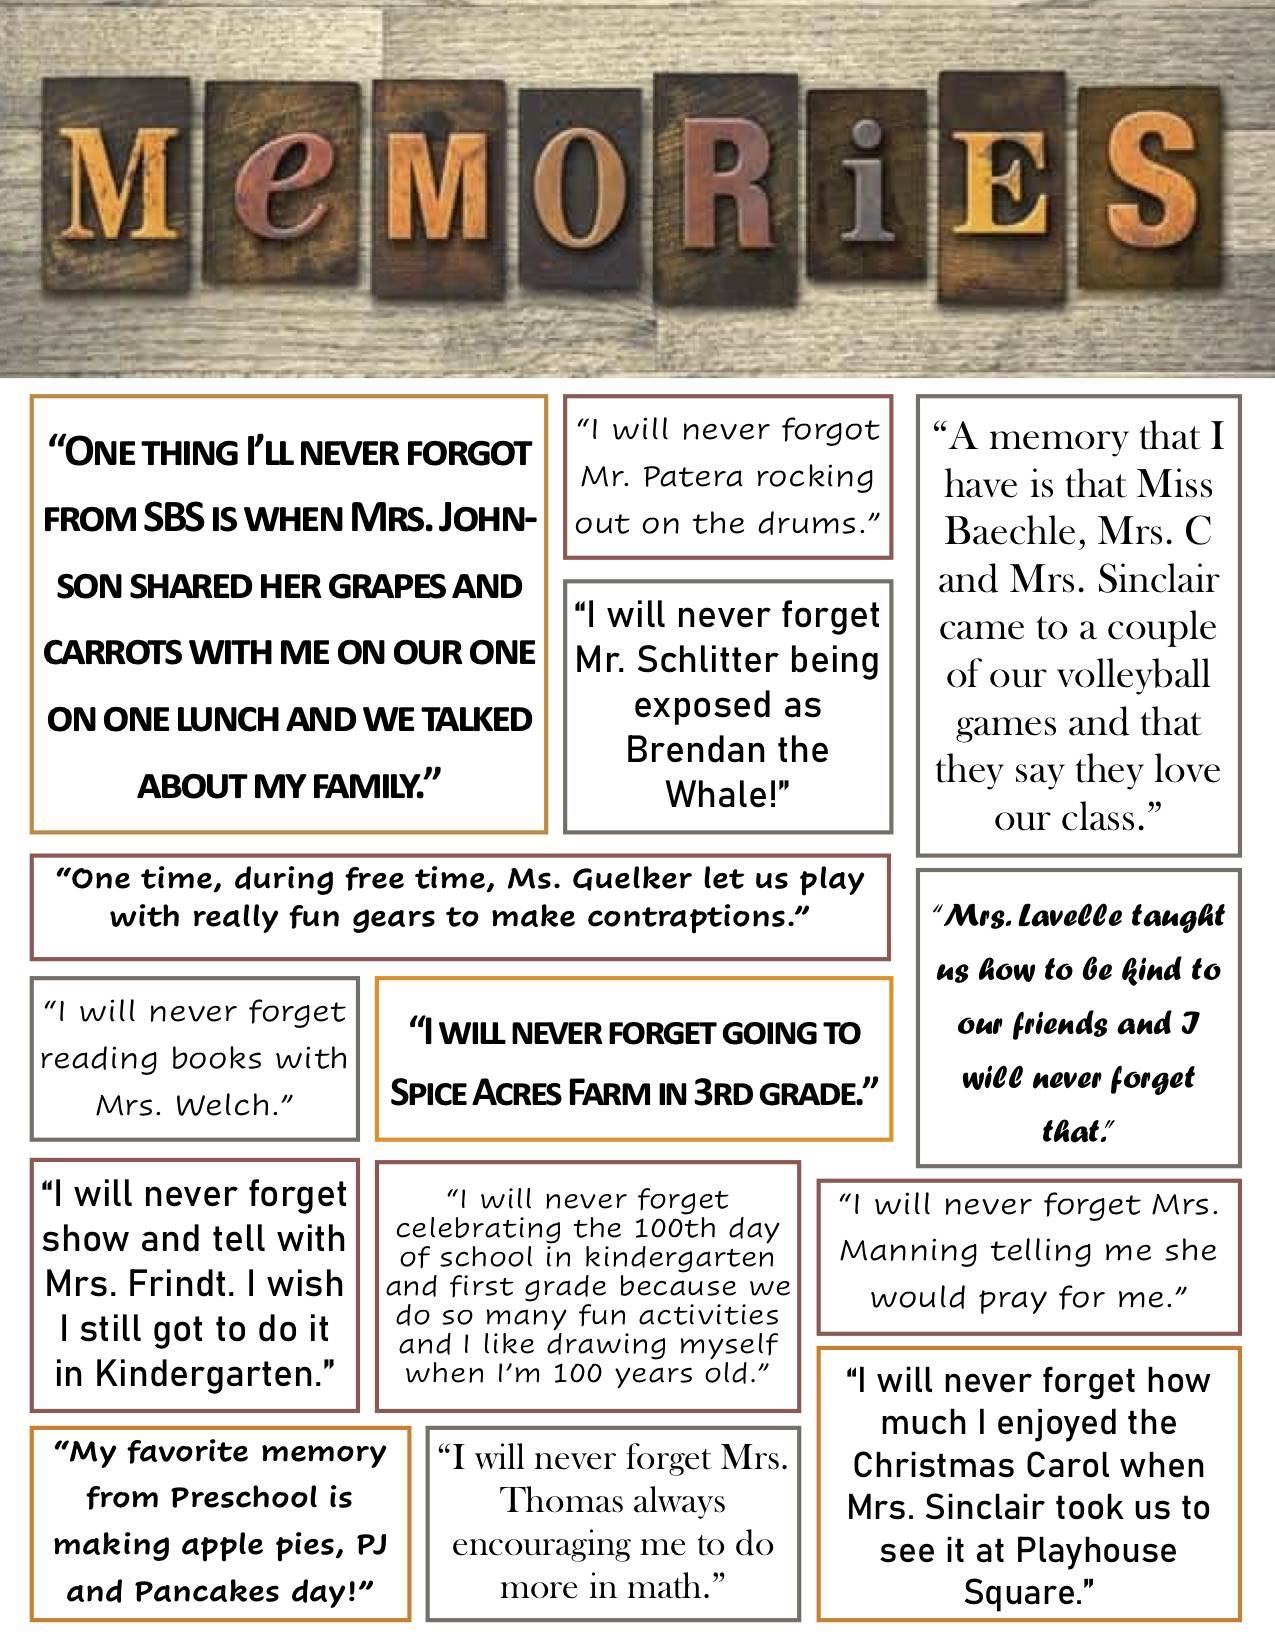 memories messages of a specific memory about each teacher